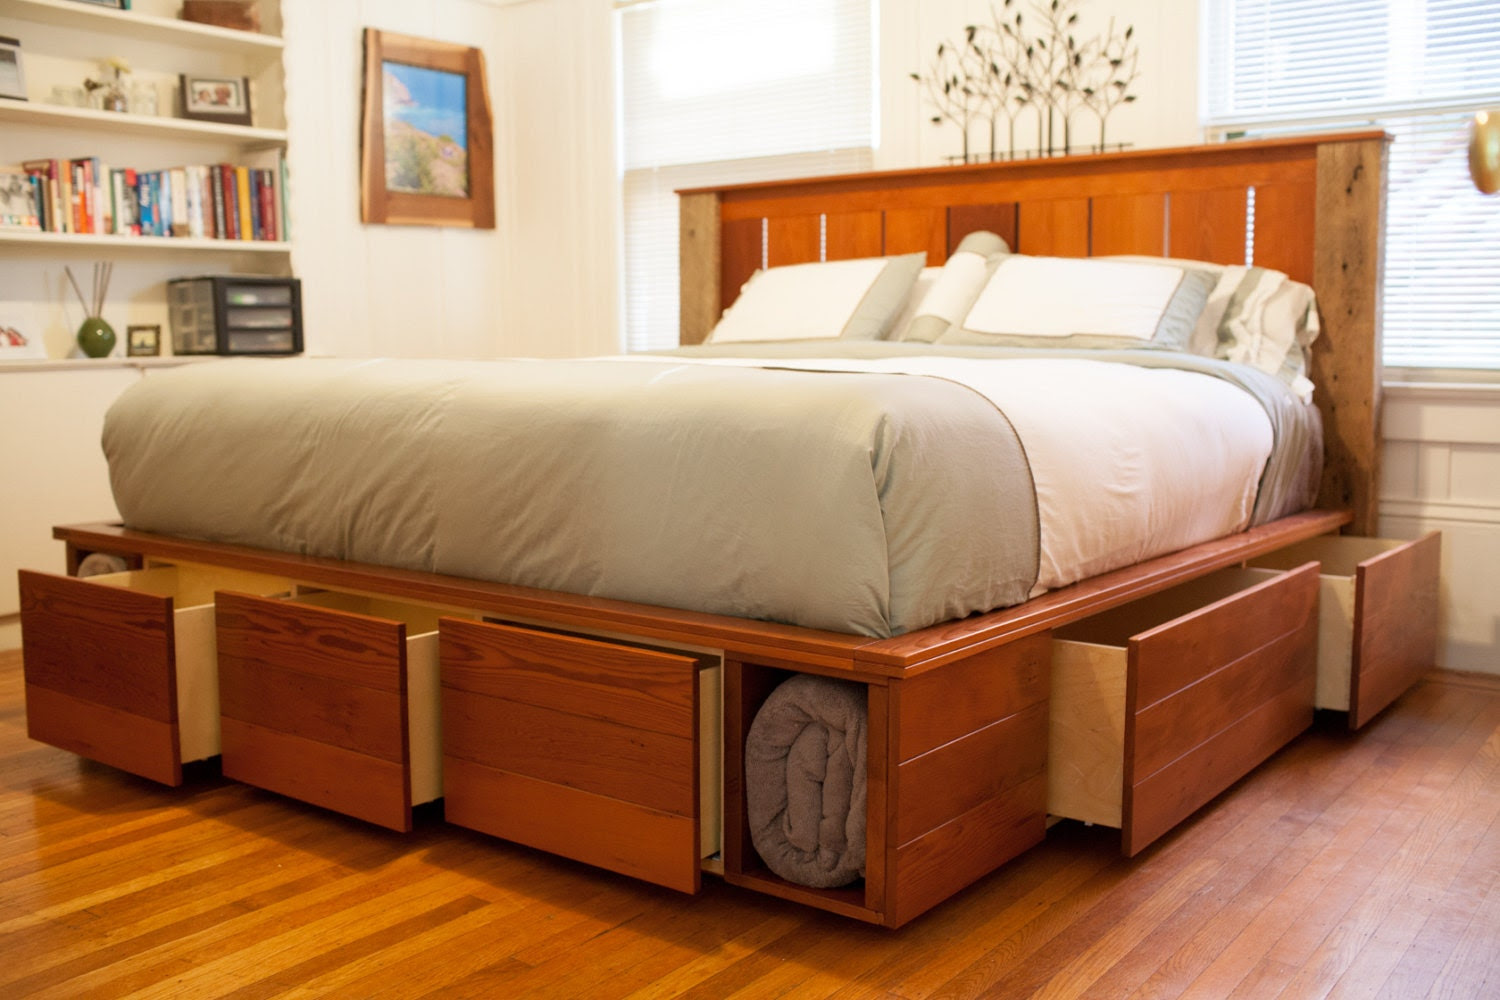 Items similar to King size captain's bed with storage made ...